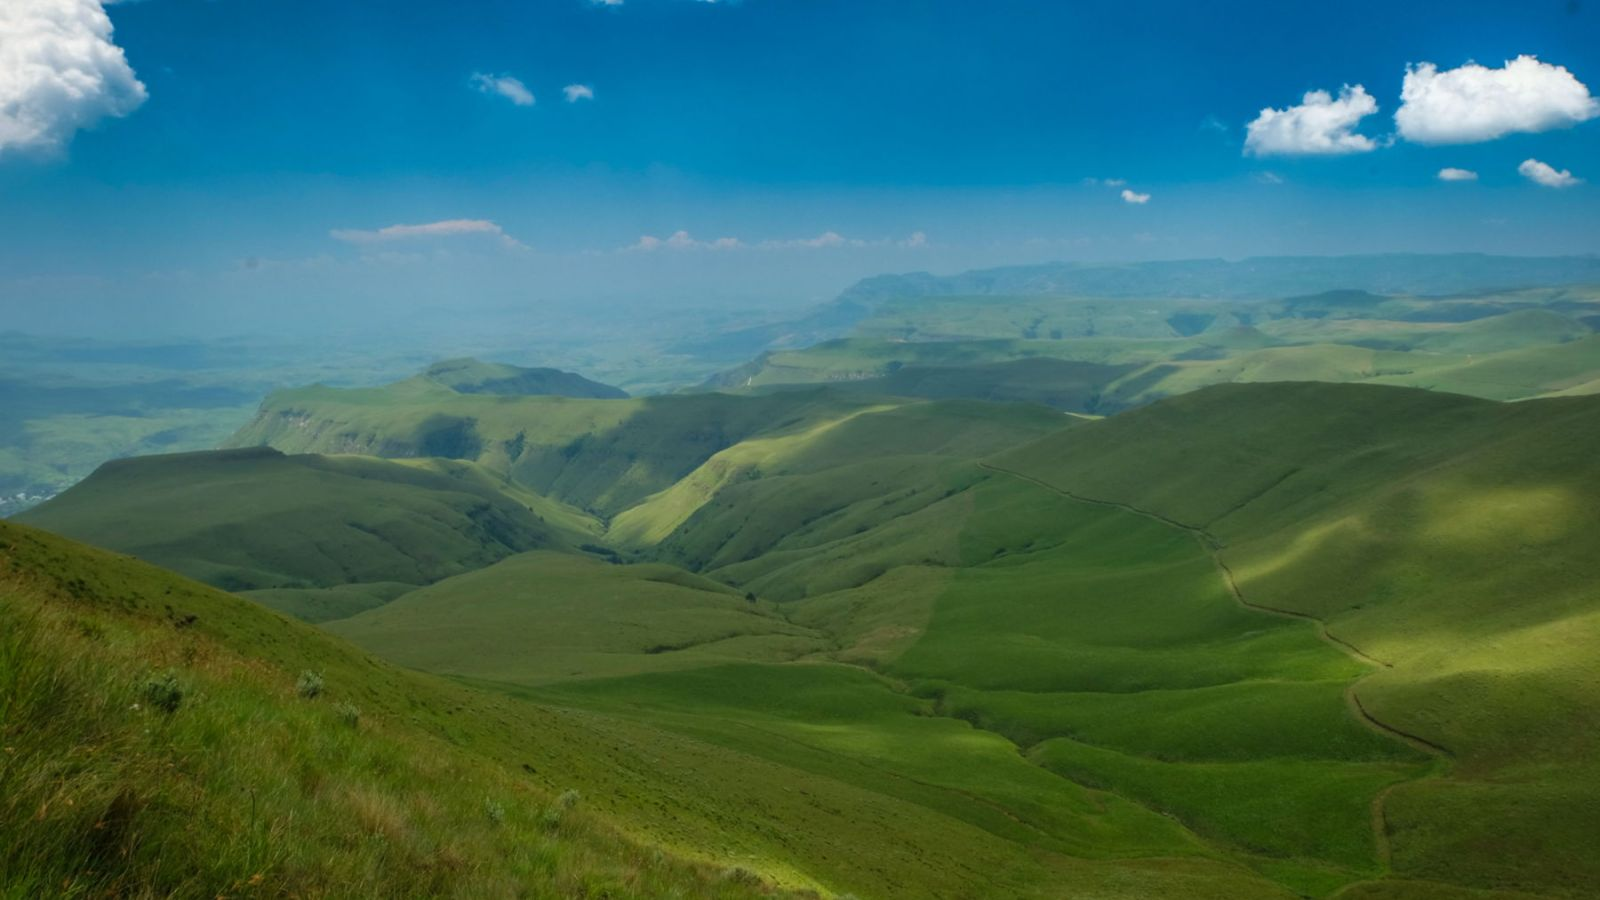 photo from the top showing a green valley in the drakensberg mountains